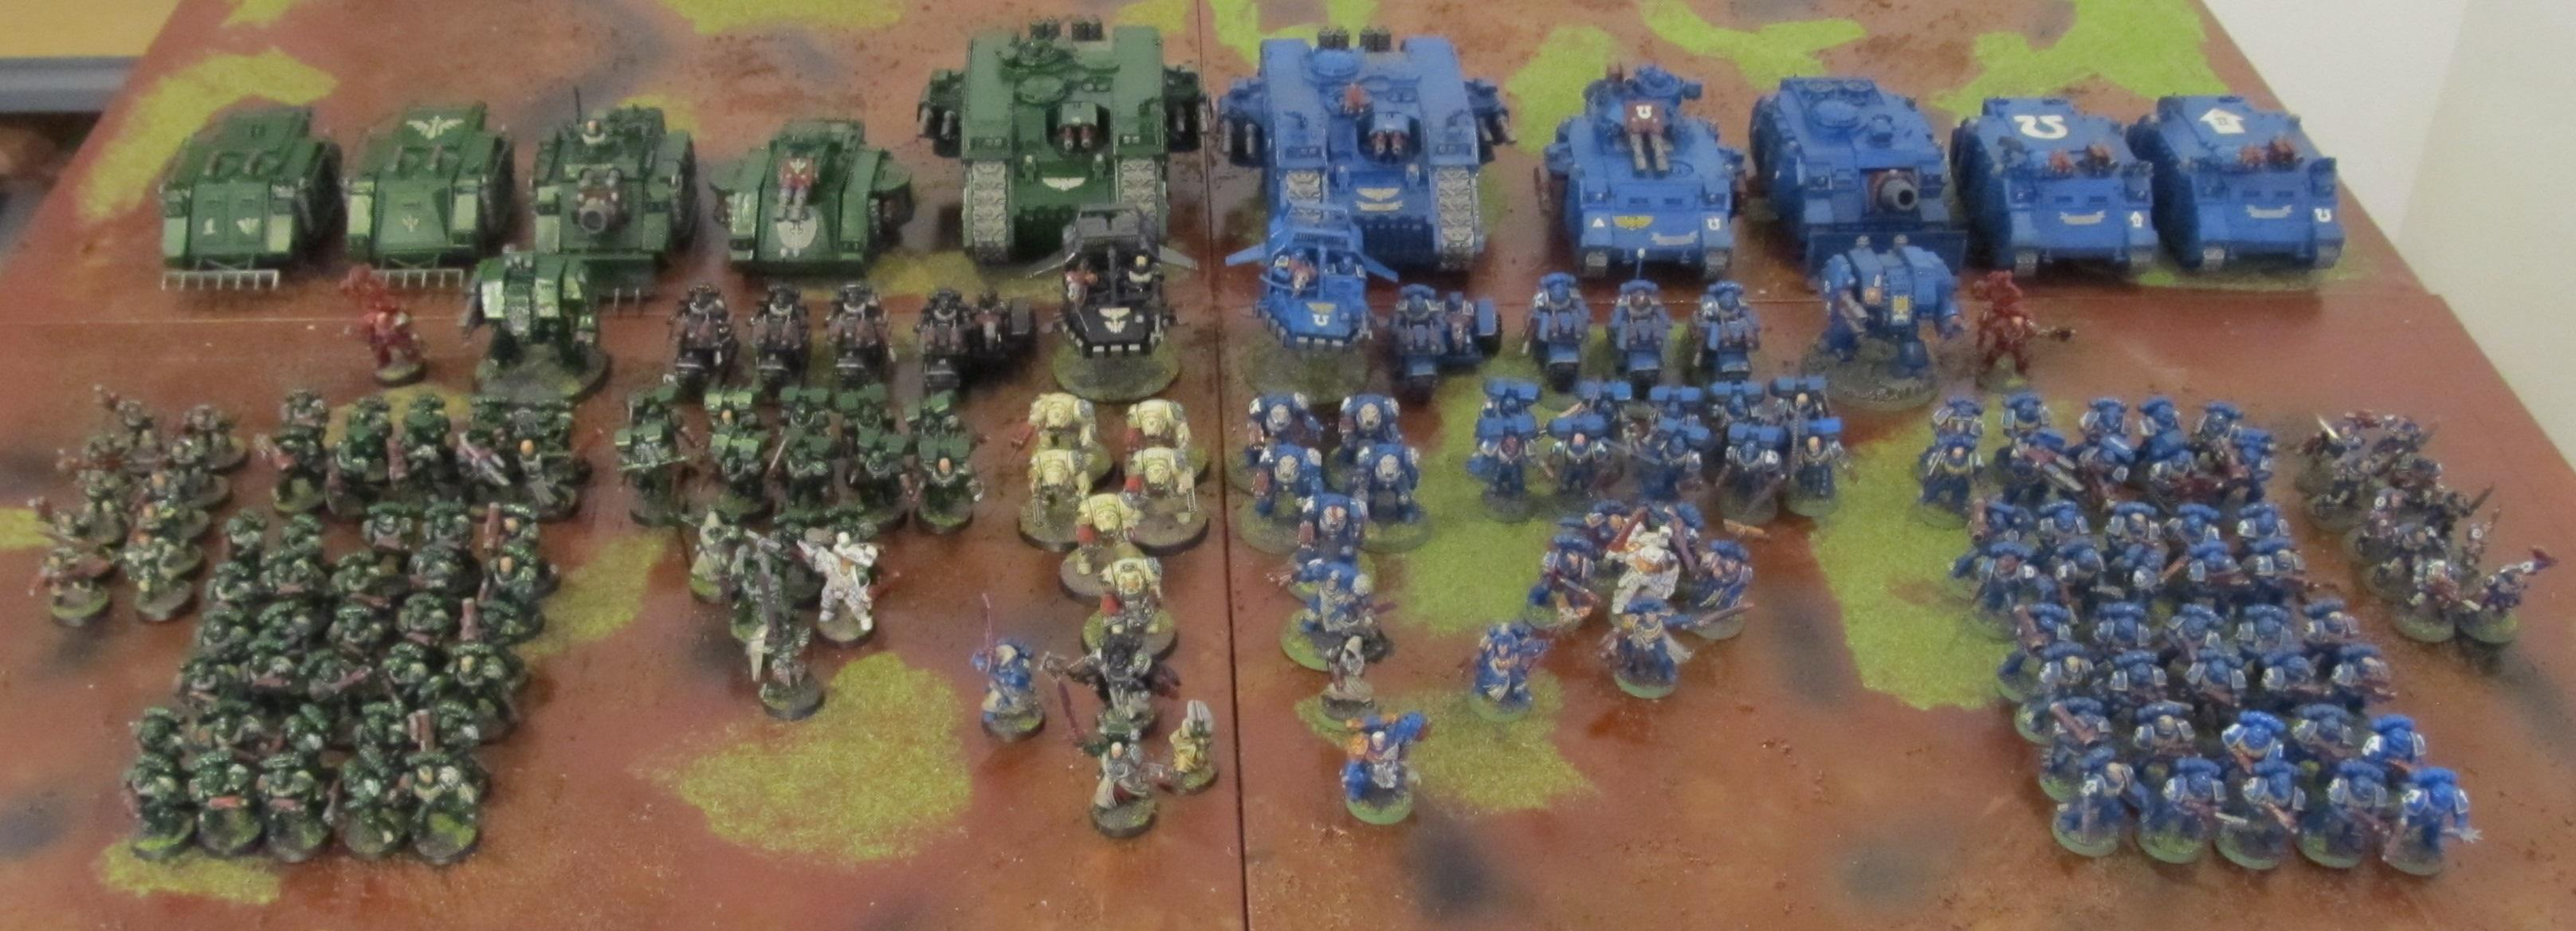 full armies front